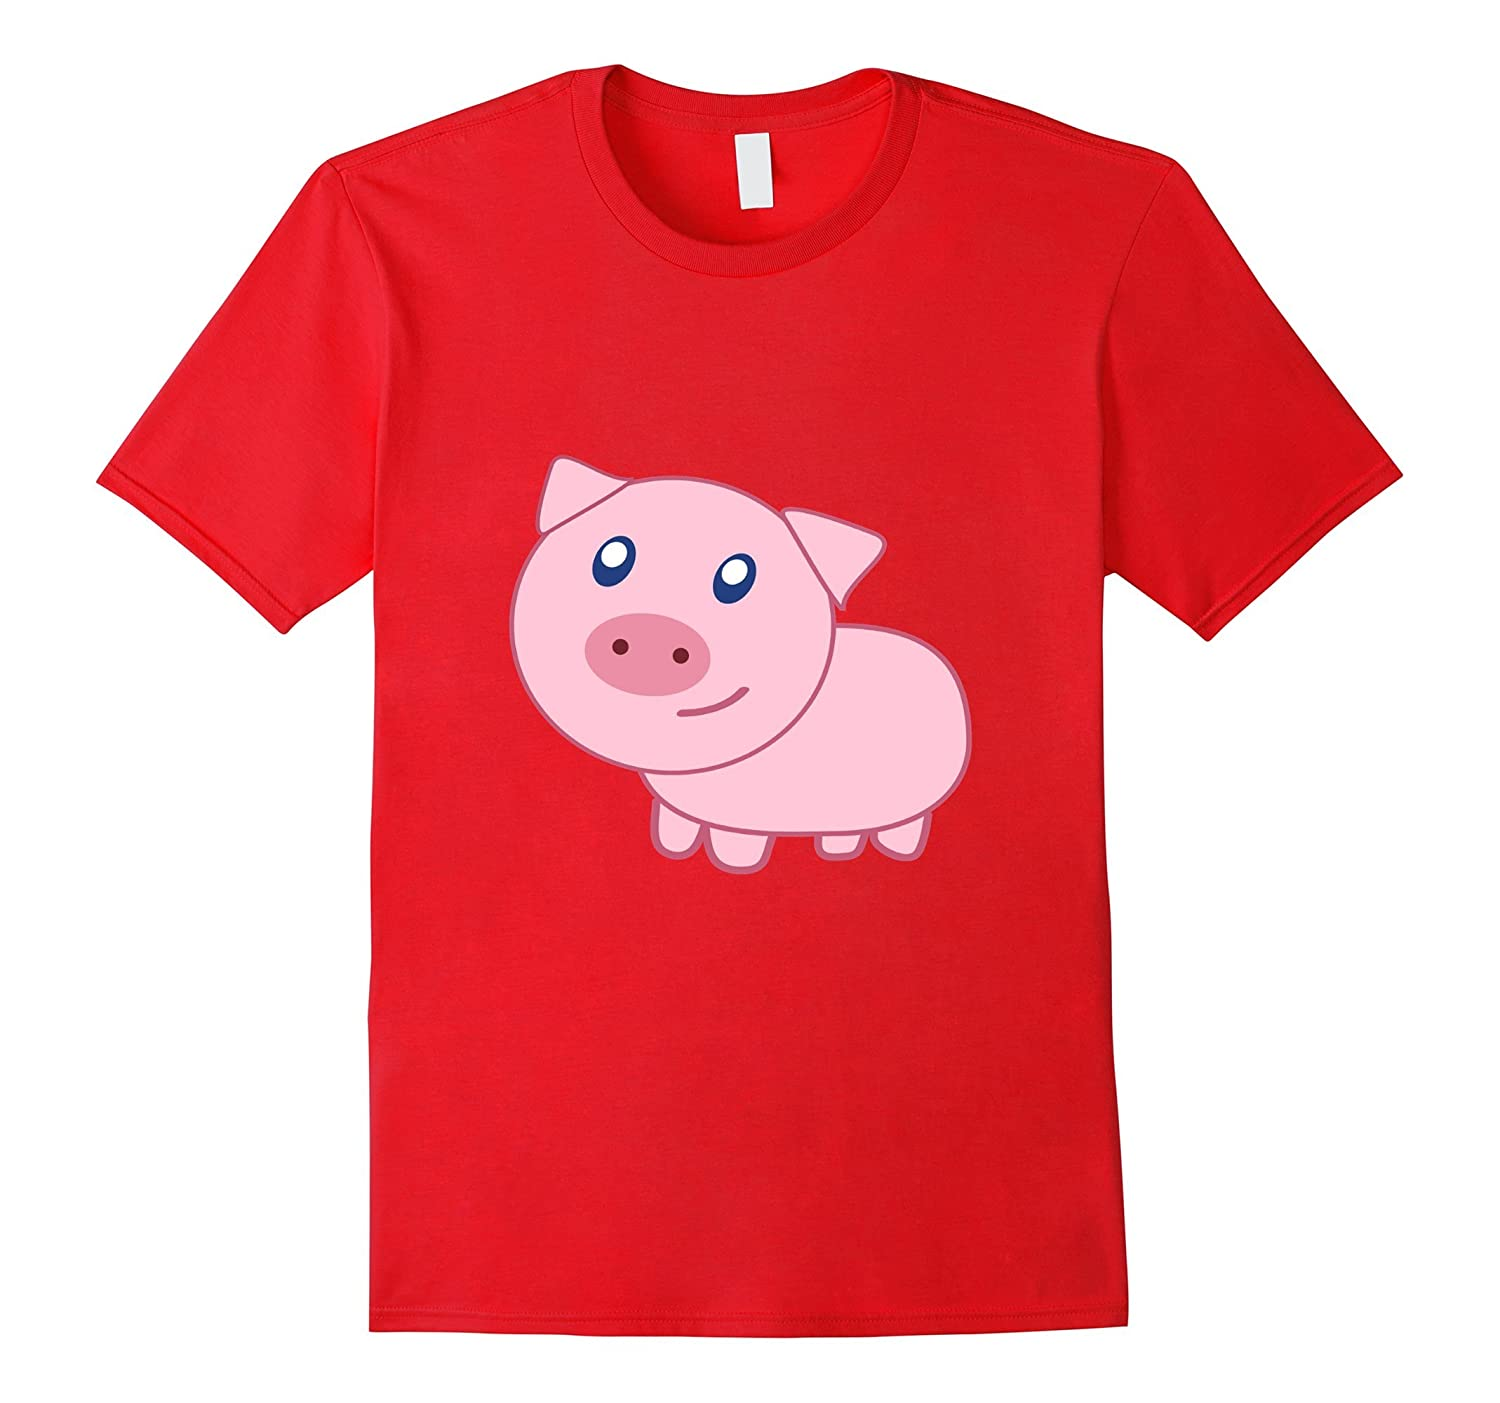 Adorable Pig T-Shirt Cartoon Pink Farm Animal Oink-RT